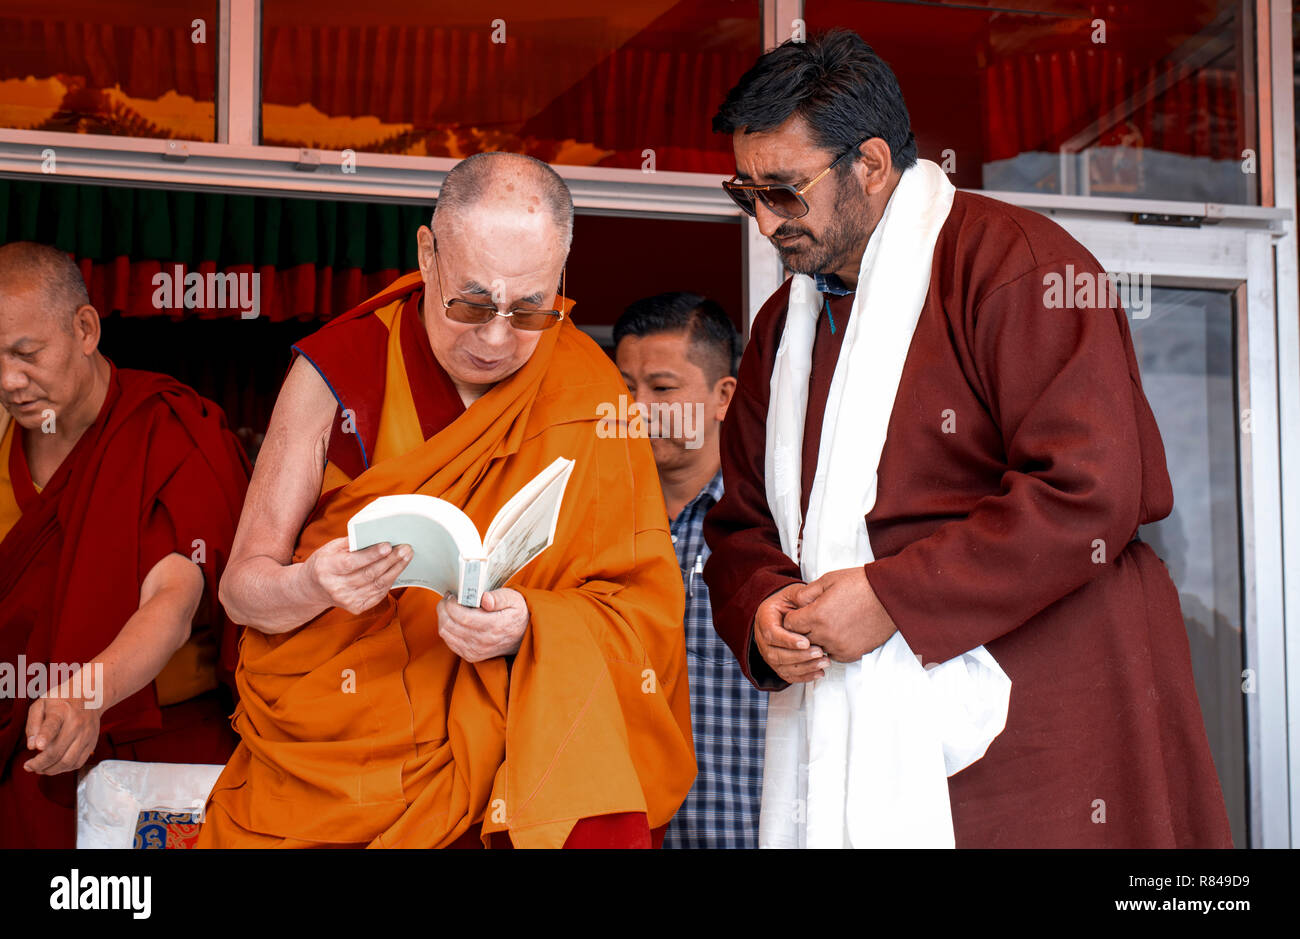 His Holiness the 14th Dalai Lama during his visit to the Spring Dales Public School in Mulbekh, Ladakh, Jammu and Kashmir, India, July 26, 2018. (CTK  Stock Photo